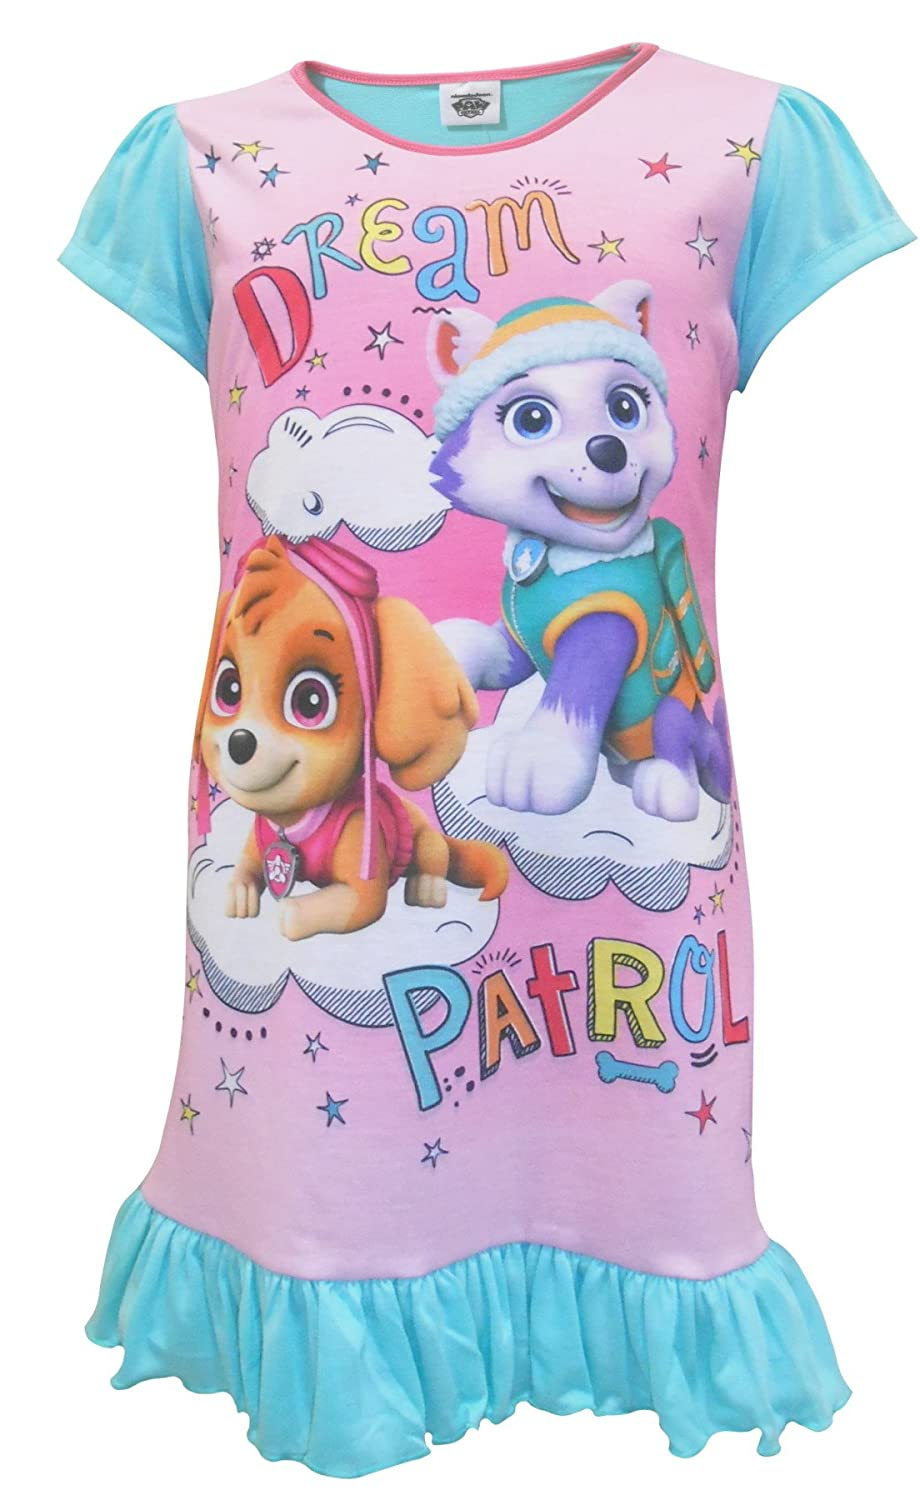 TDP Textiles Paw Patrol Little Girls Nightie Nightdress